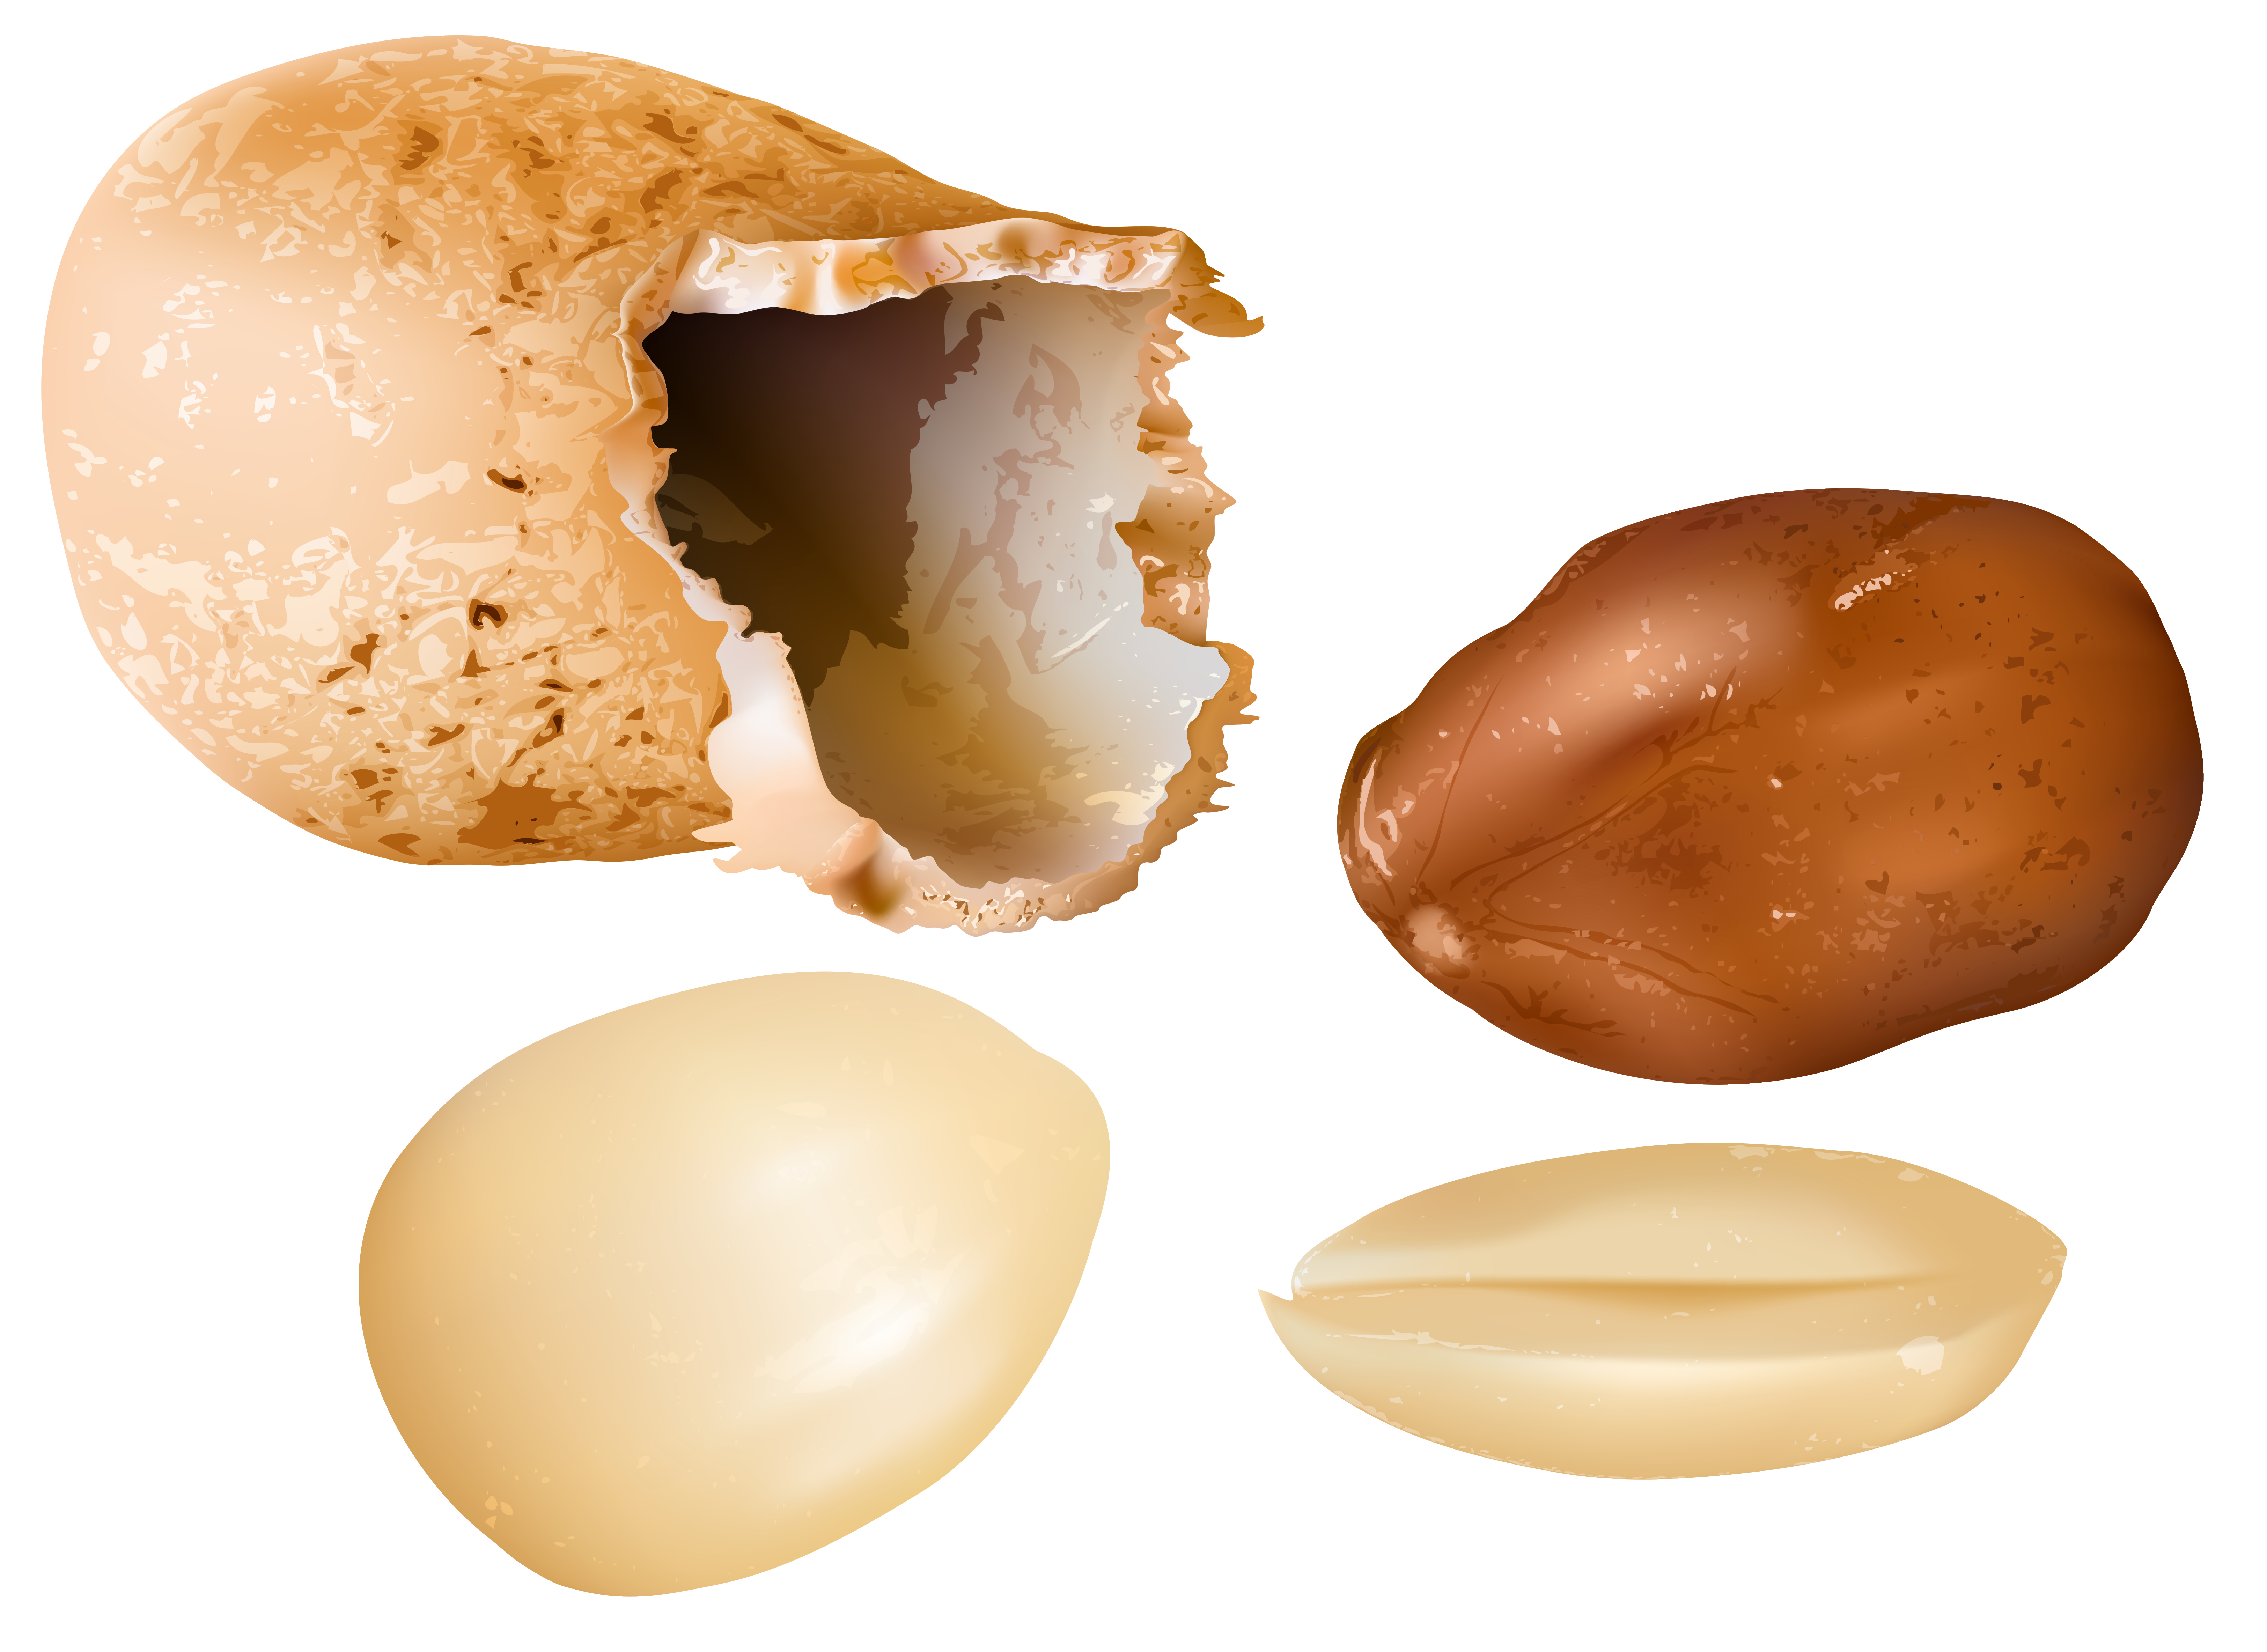 Png image gallery yopriceville. Peanuts clipart food